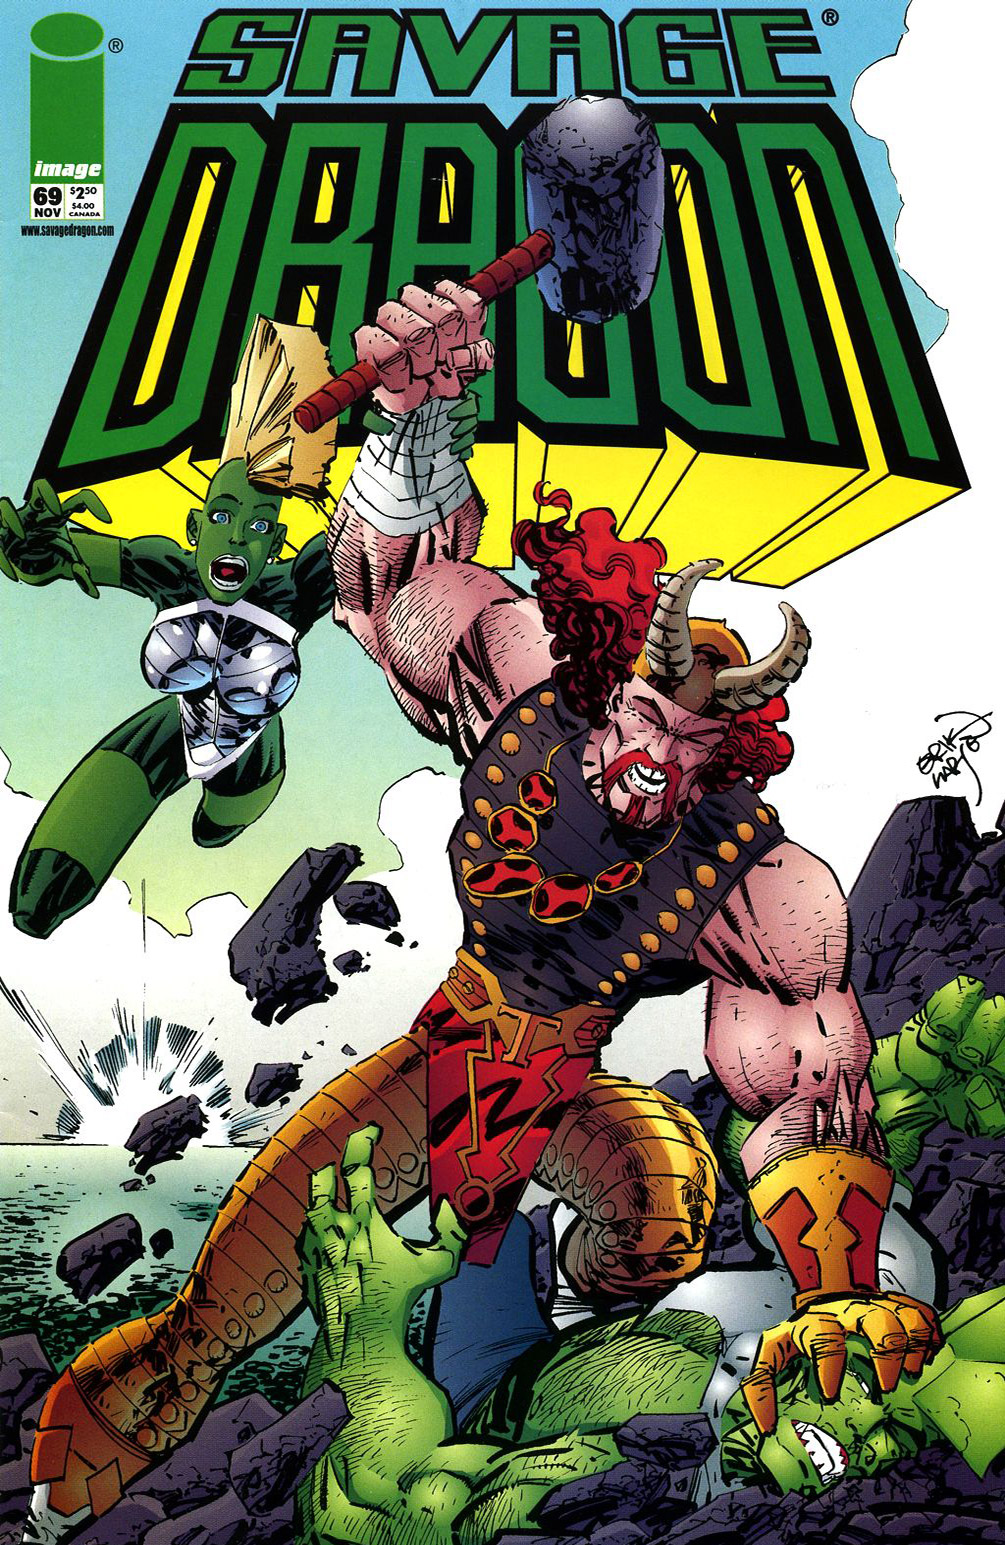 Cover Savage Dragon Vol.2 #69